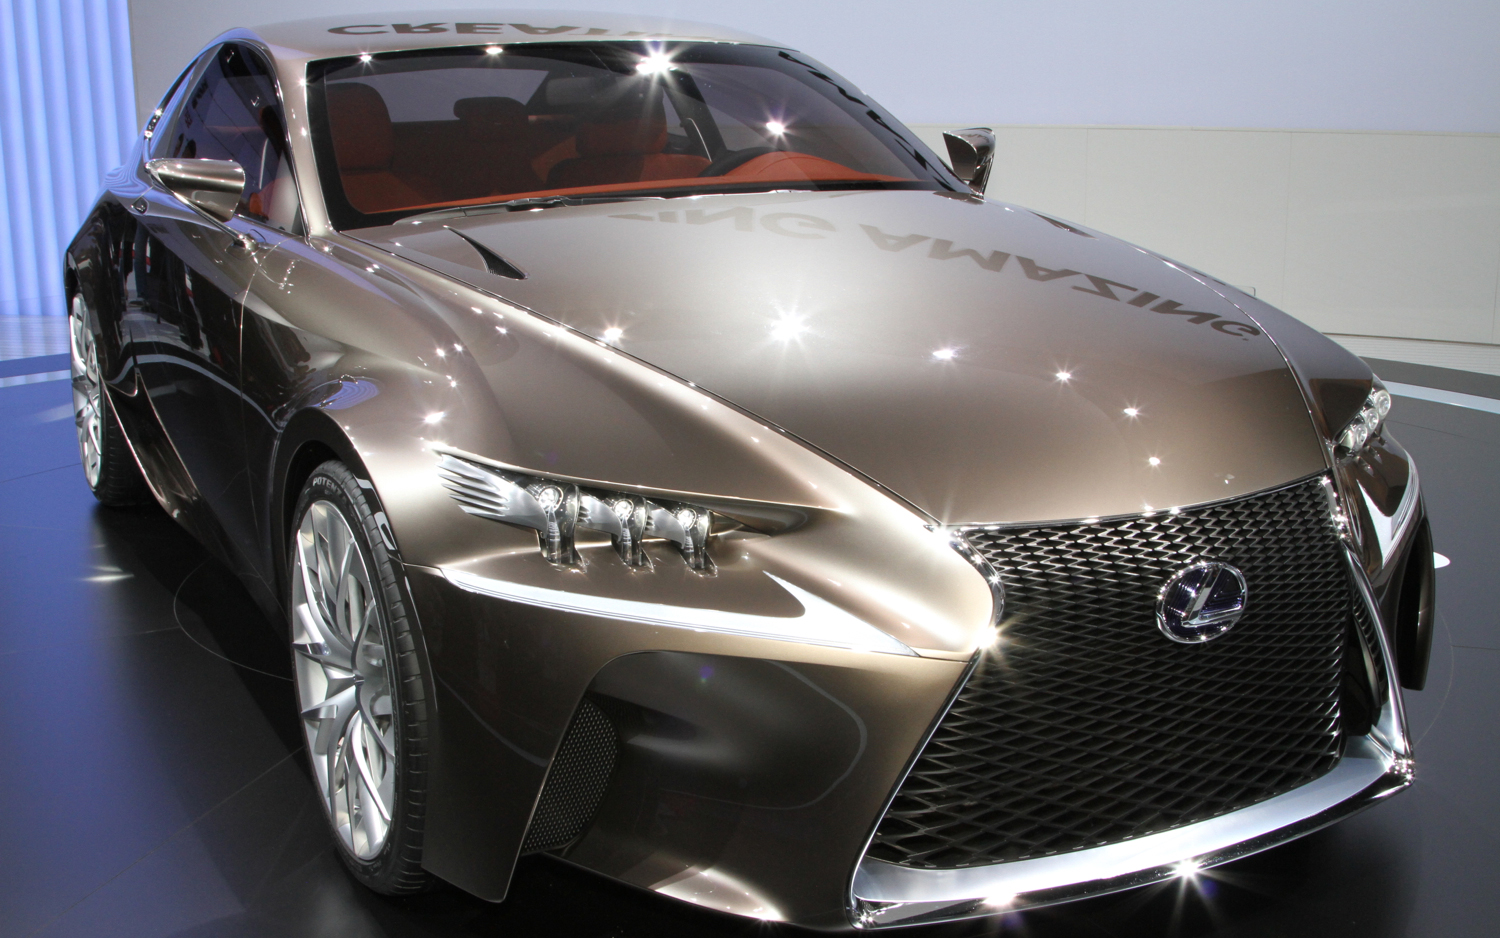 https://enthusiastnetwork.s3.amazonaws.com/uploads/sites/5/2012/09/Lexus-LF-CC-Concept-front-three-quarters2.jpg?impolicy=entryimage